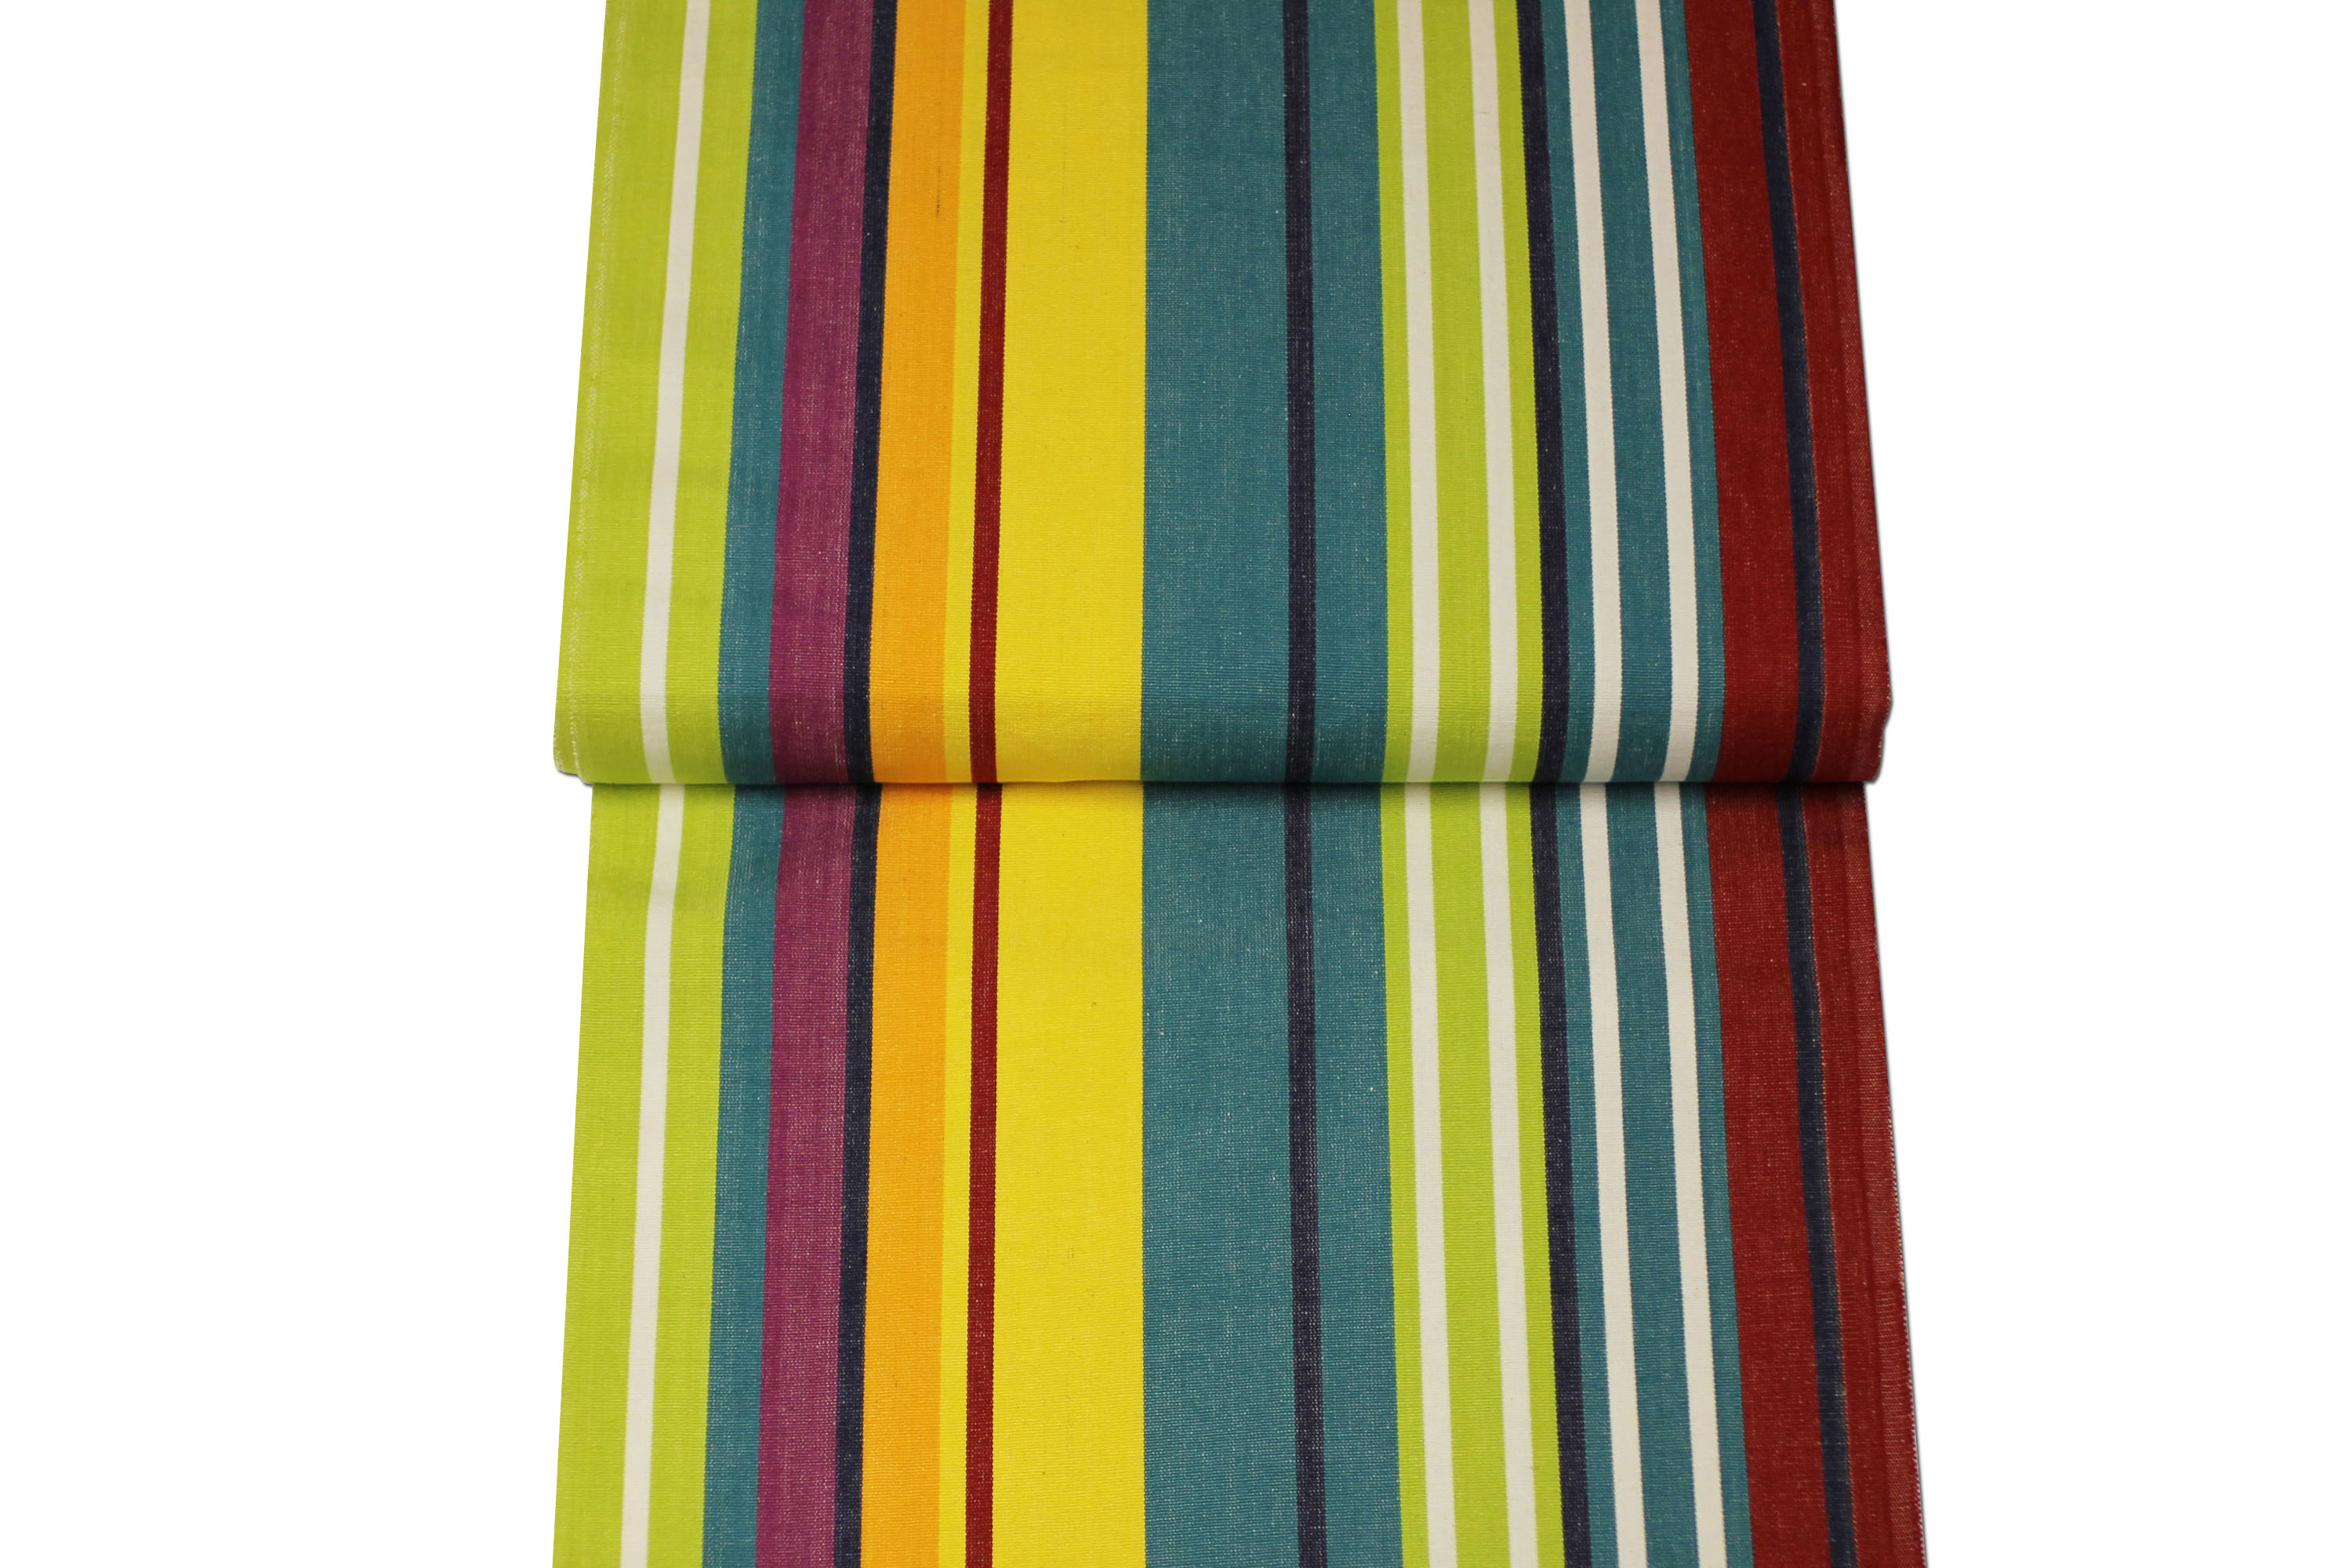 deck chair sling replacement brown parsons chairs slings the stripes company united states turquoise aerobics